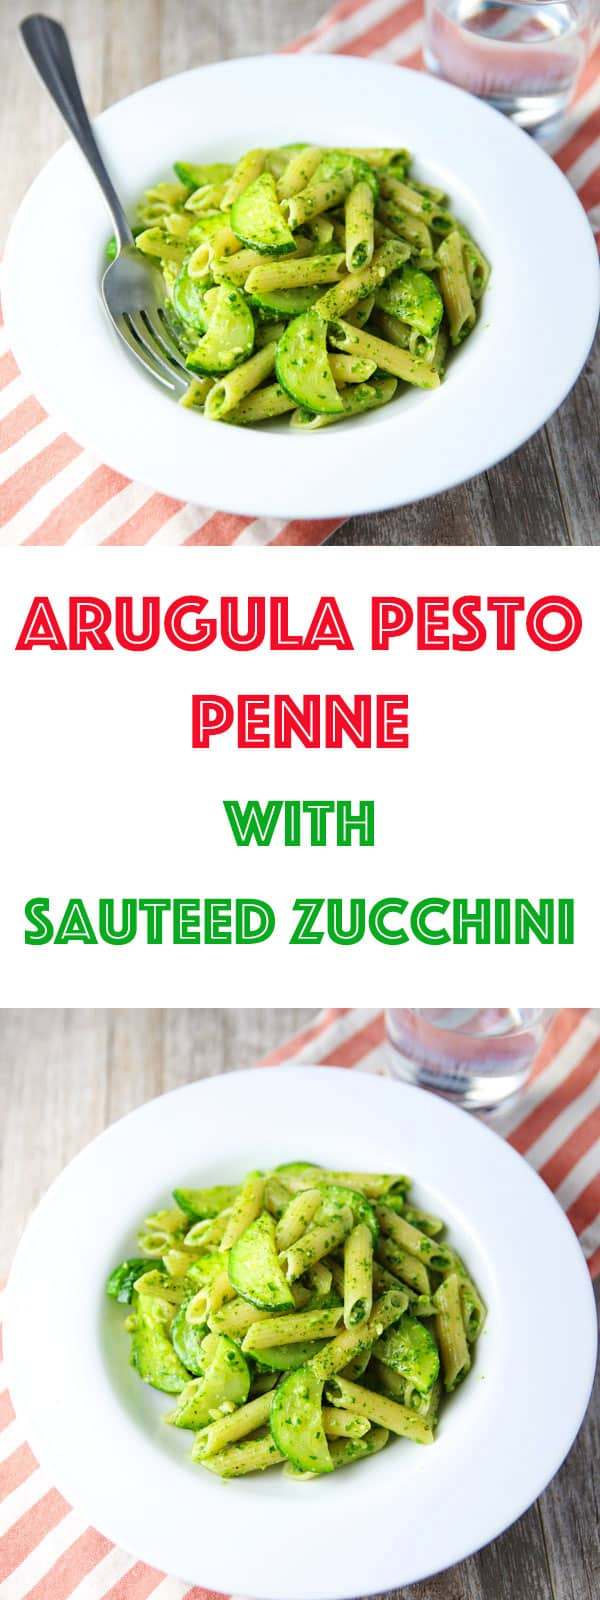 This Arugula Pesto Penne with Sautéed Zucchini can be made in about 10 minutes, making this perfect for those busy weeknights! This is such a light and savory pasta dish!